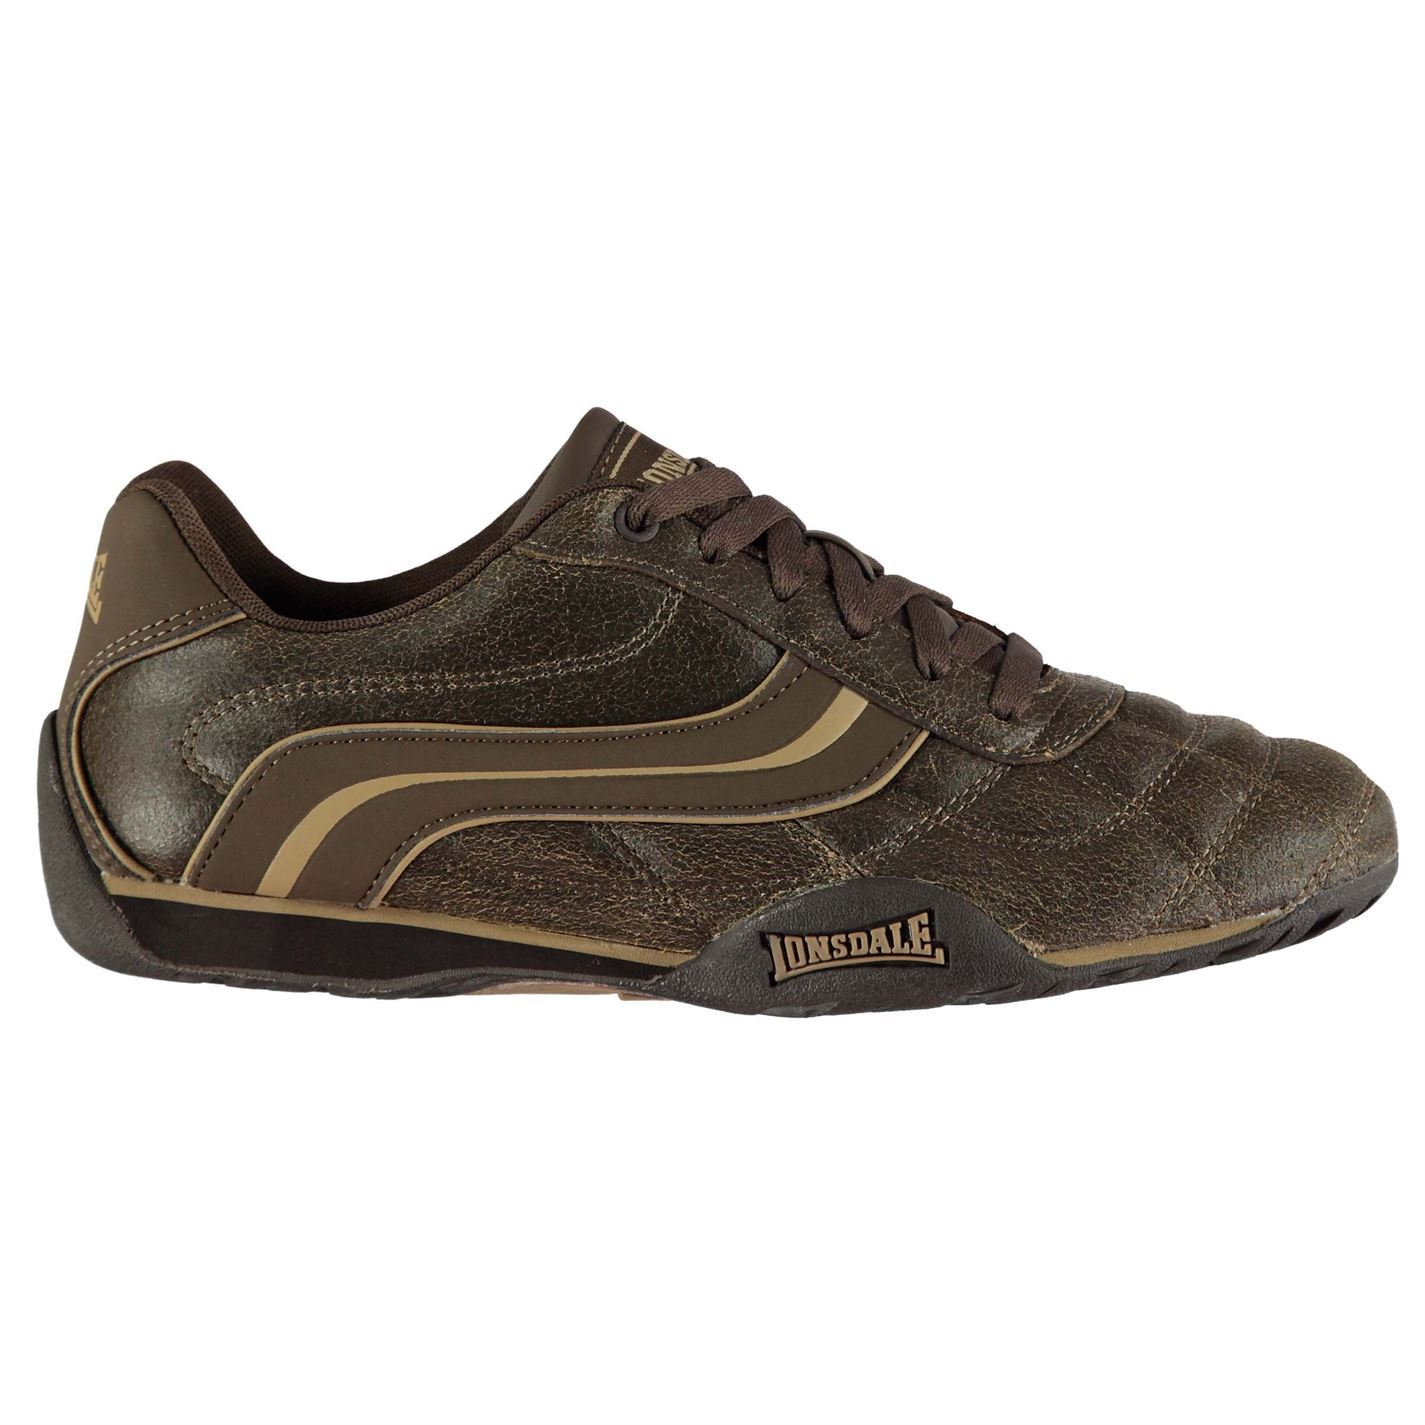 Lonsdale Camden Uomo Trainers  Uomo Camden Schuhes Sneakers Footwear 119923